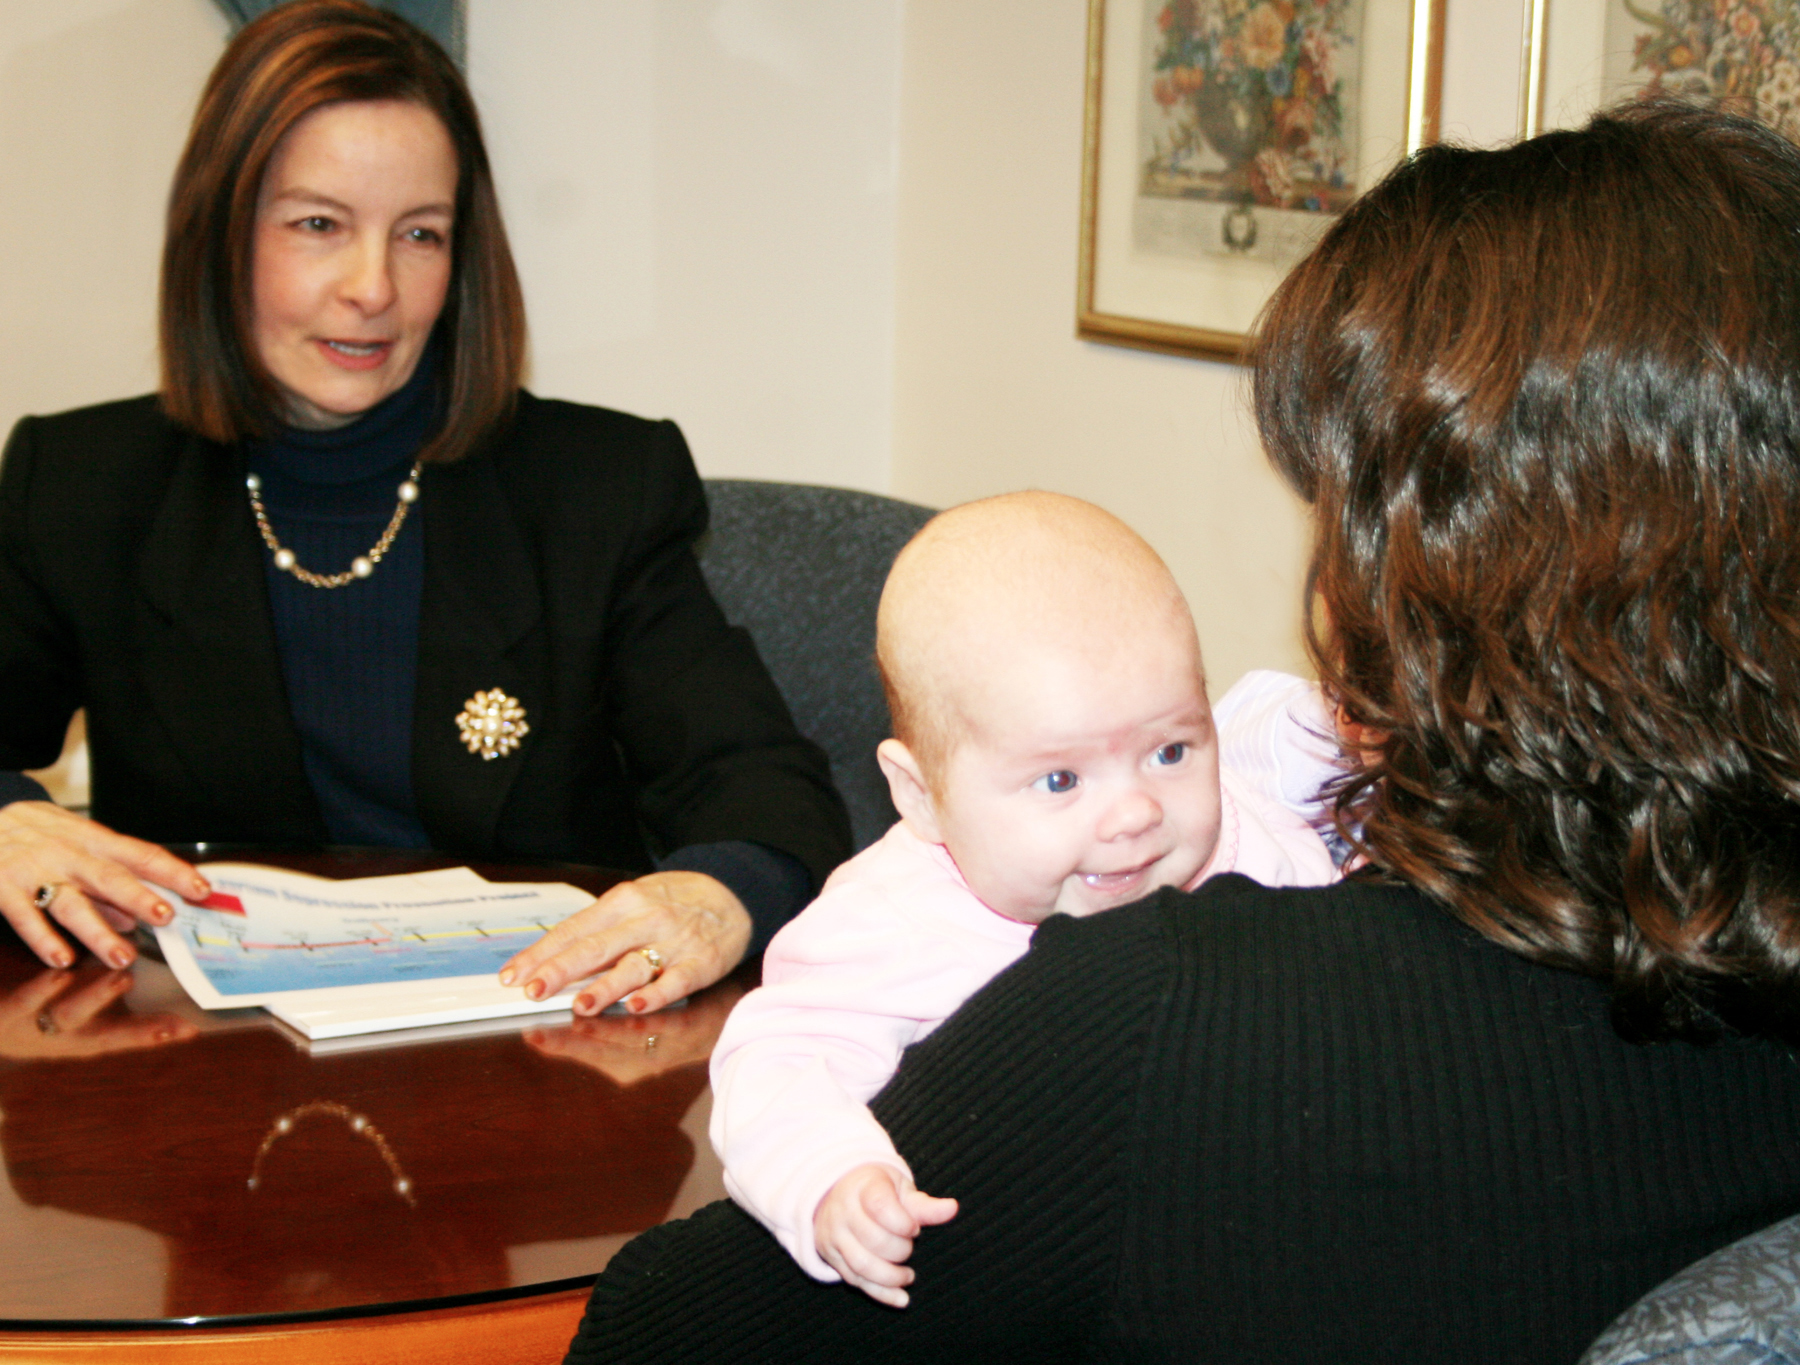 Professor Cheryl Beck meeting with a mother and infant child.